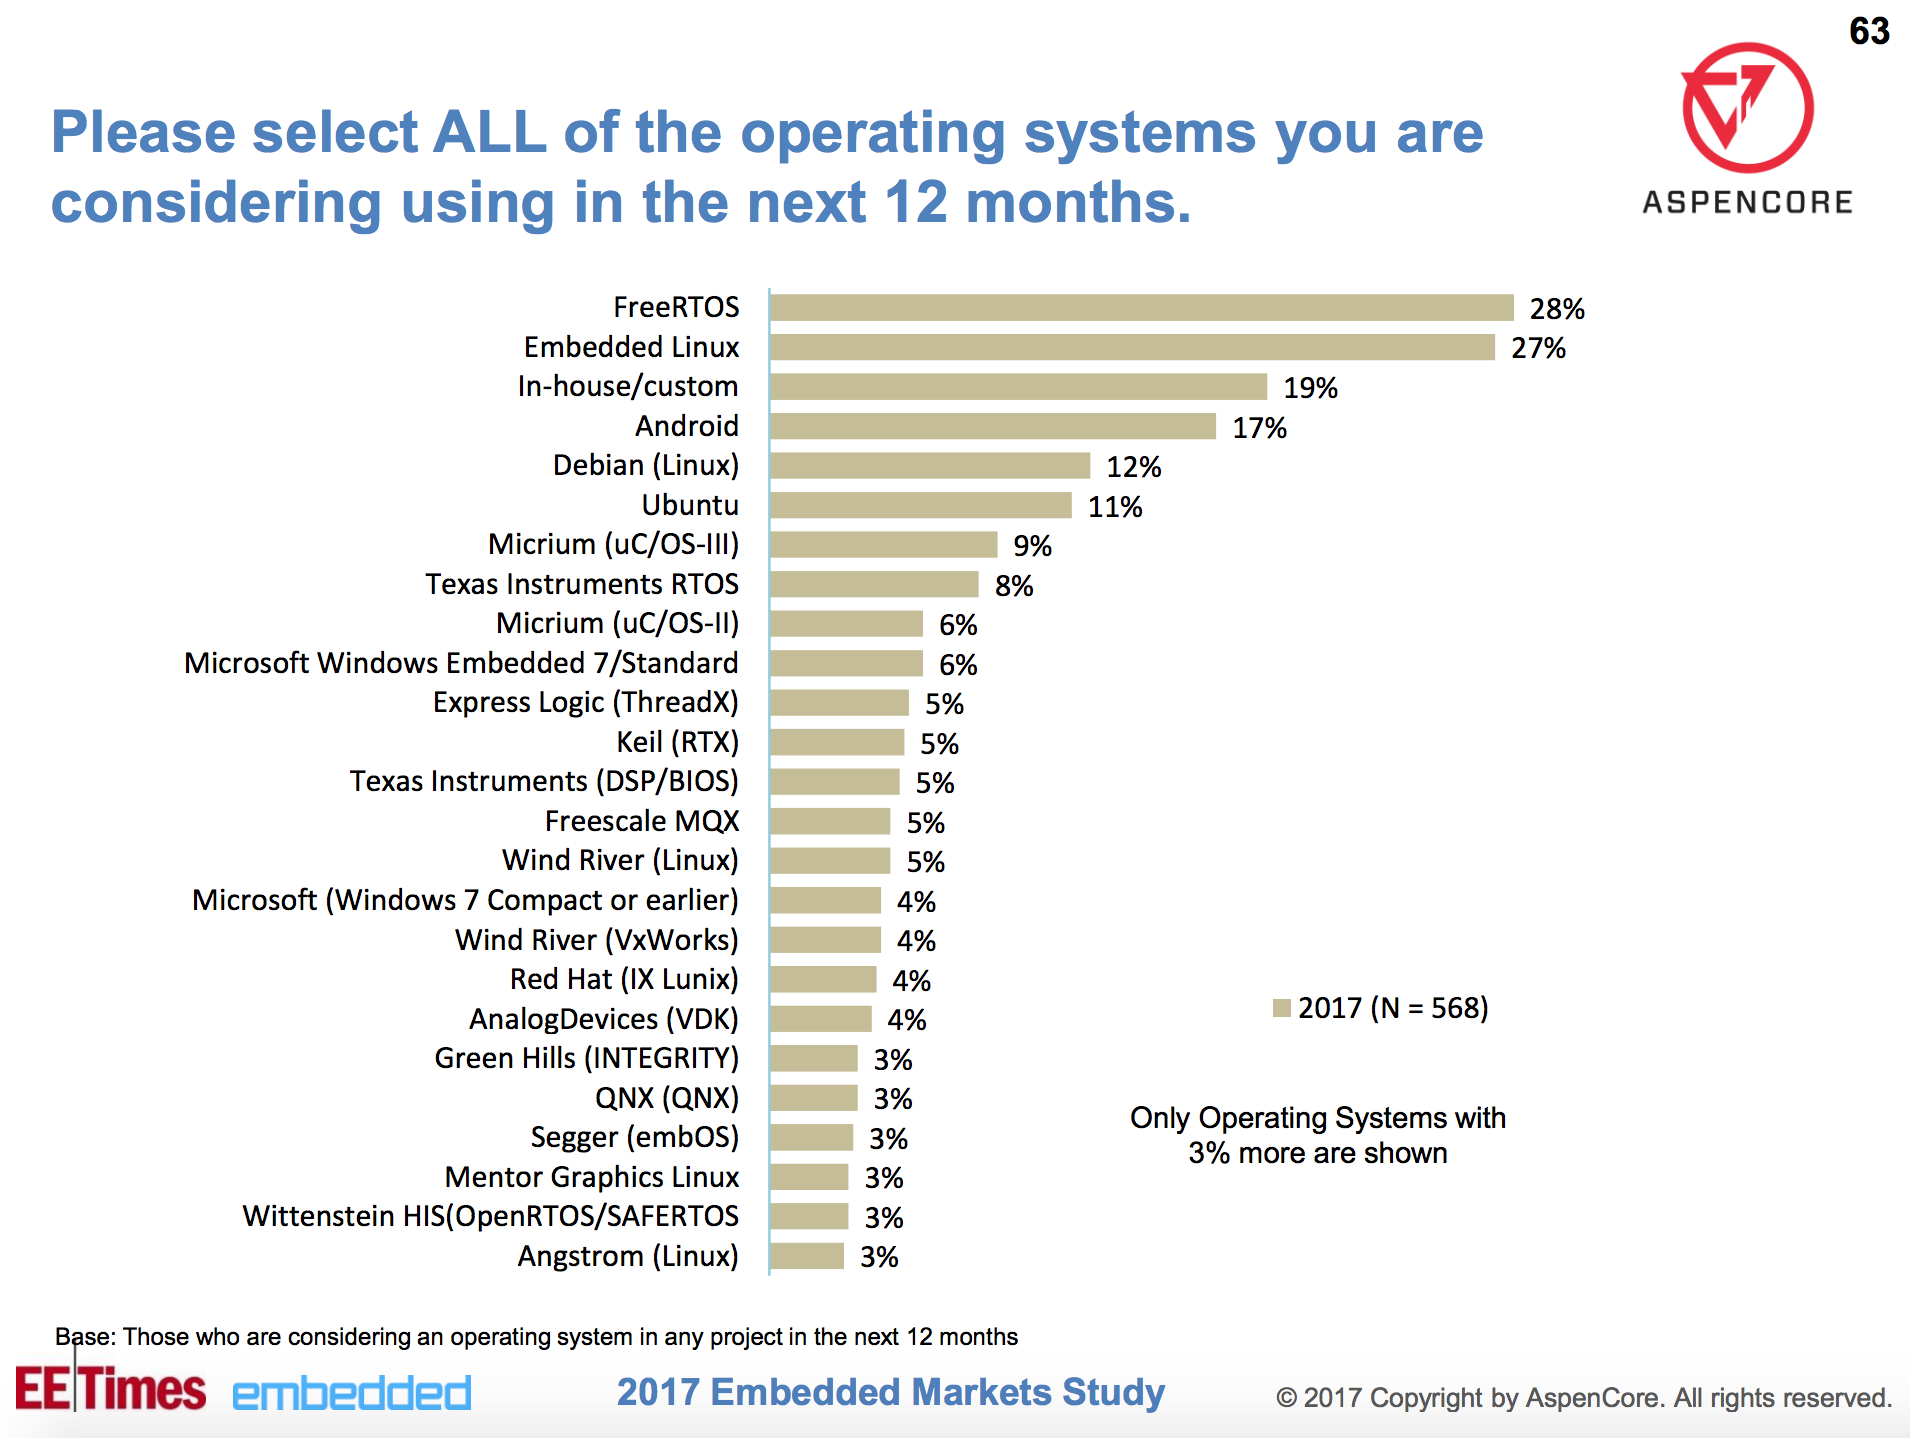 Linux and Open Source on the Move in Embedded, Says Survey